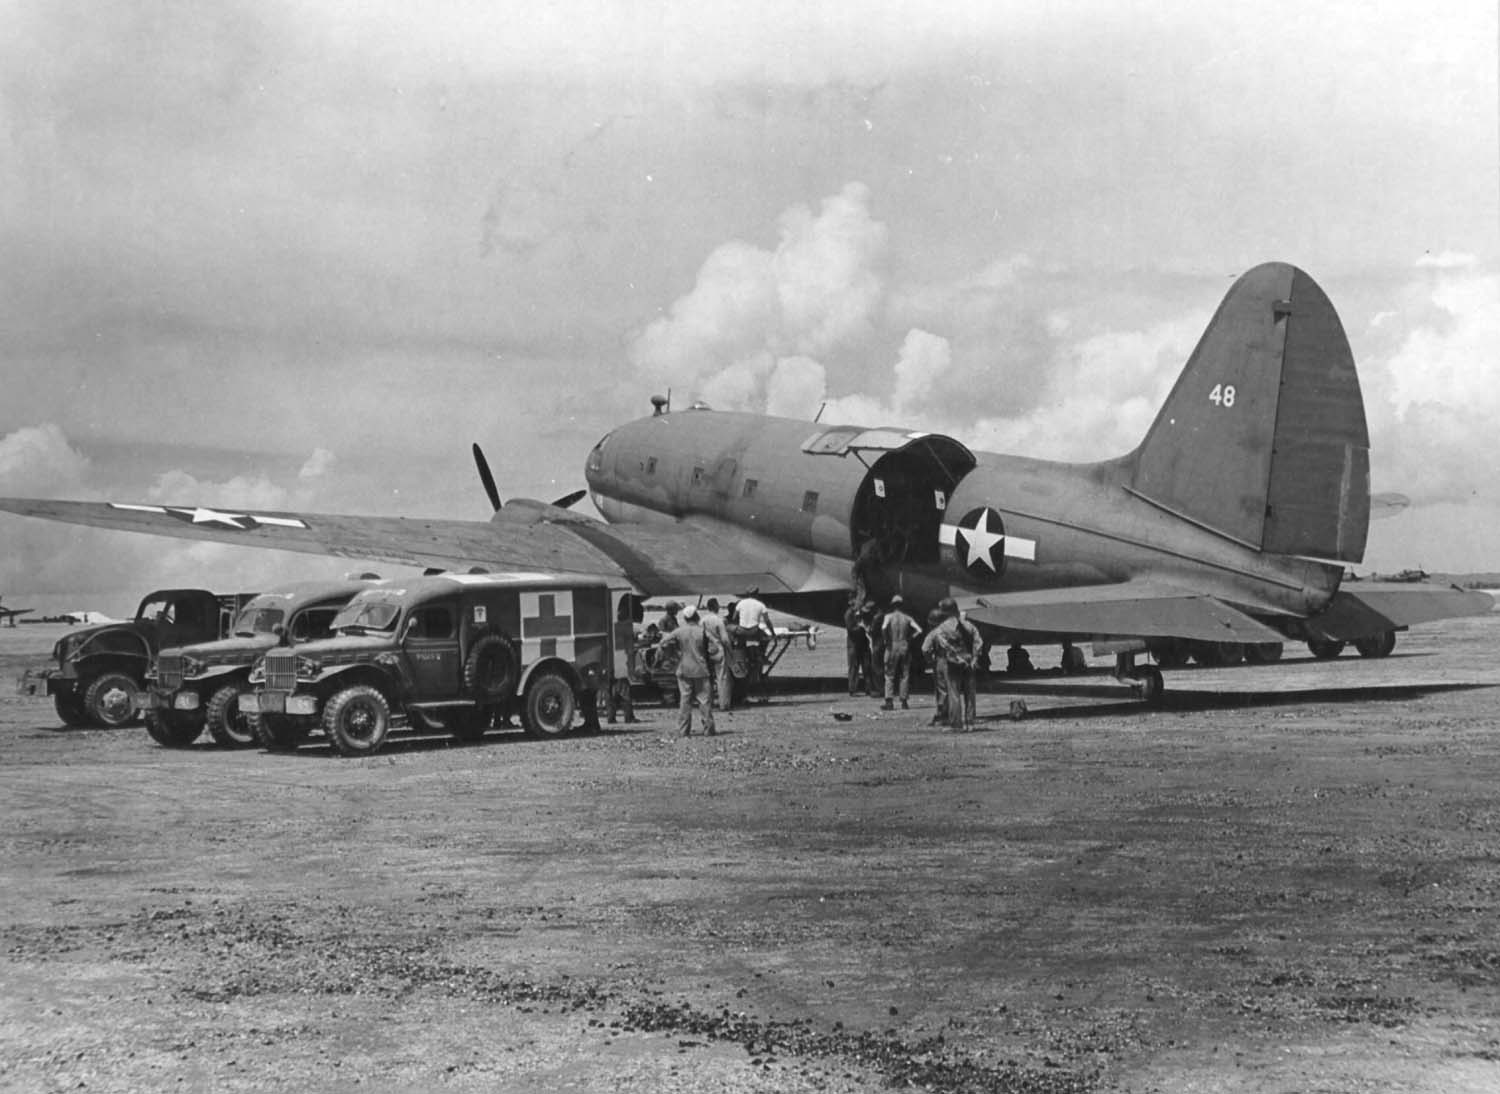 June 28, 1944: Wounded troops are loaded aboard a R5C-1 Commando of VMR-252, for evacuation from Saipan during the battle for that island. (Dan Farnham collection)